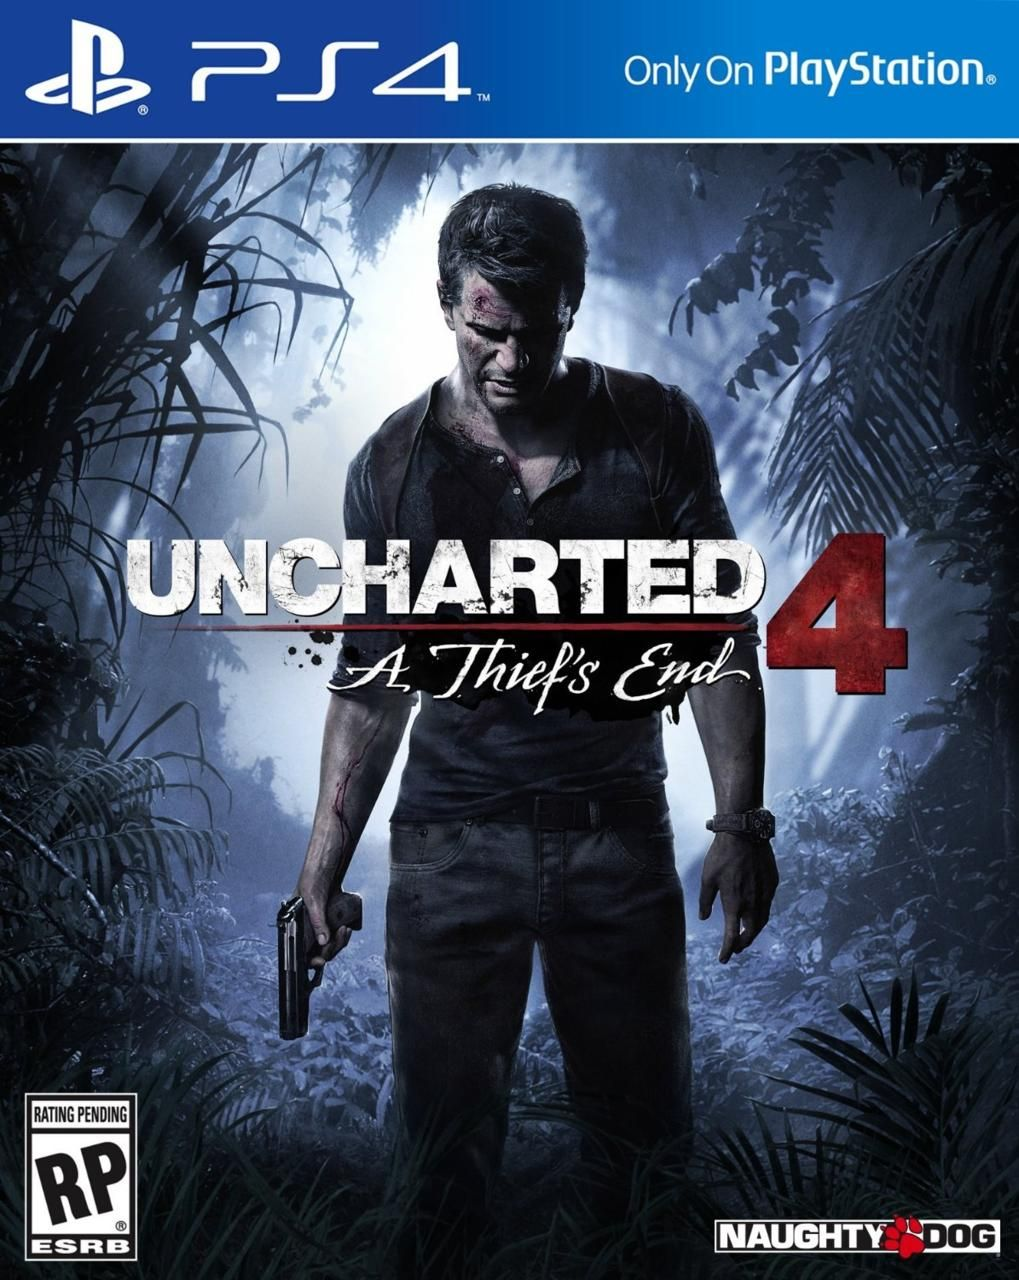 Uncharted 4 Box Art Revealed By Amazon Uncharted A Thief S End Ps4 Uncharted A Thief S End